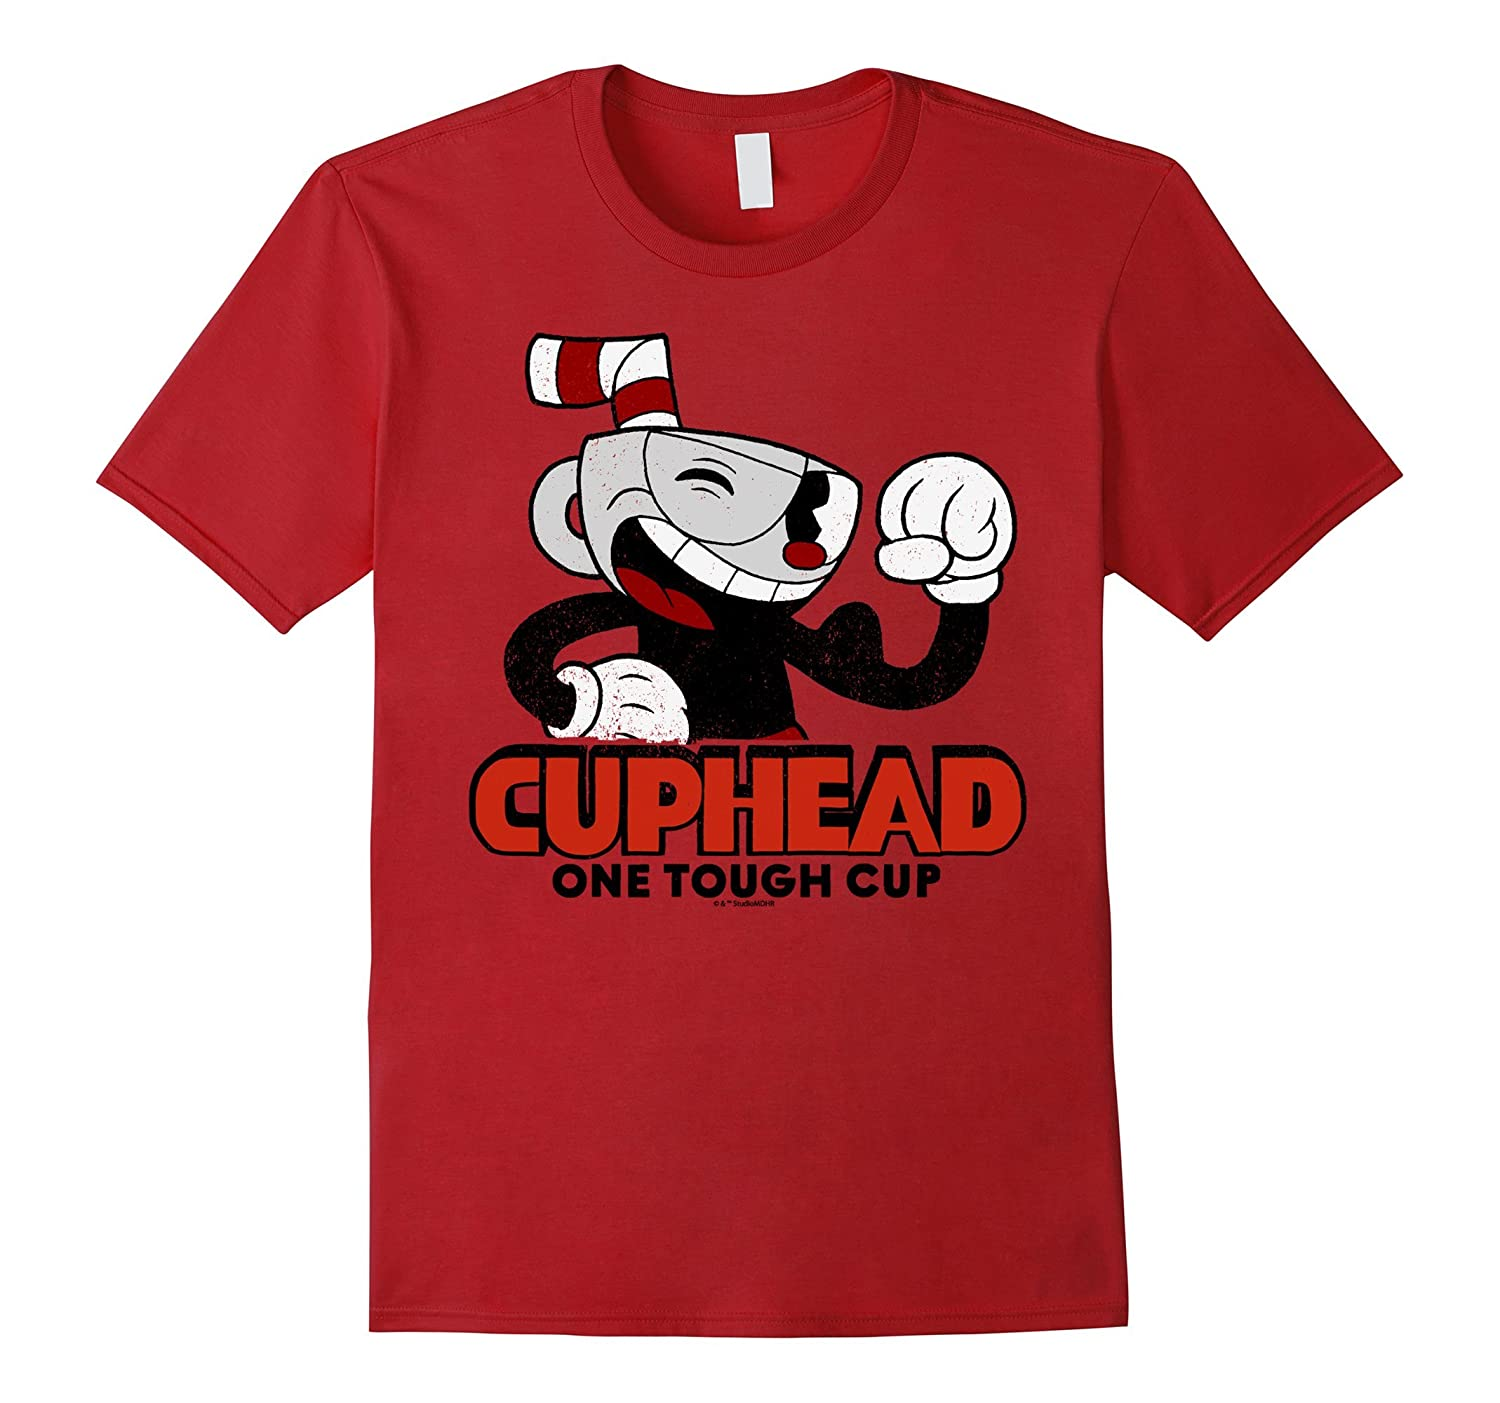 Cuphead Muscle Up One Tough Cup Profile Pose Graphic T-Shirt-T-Shirt